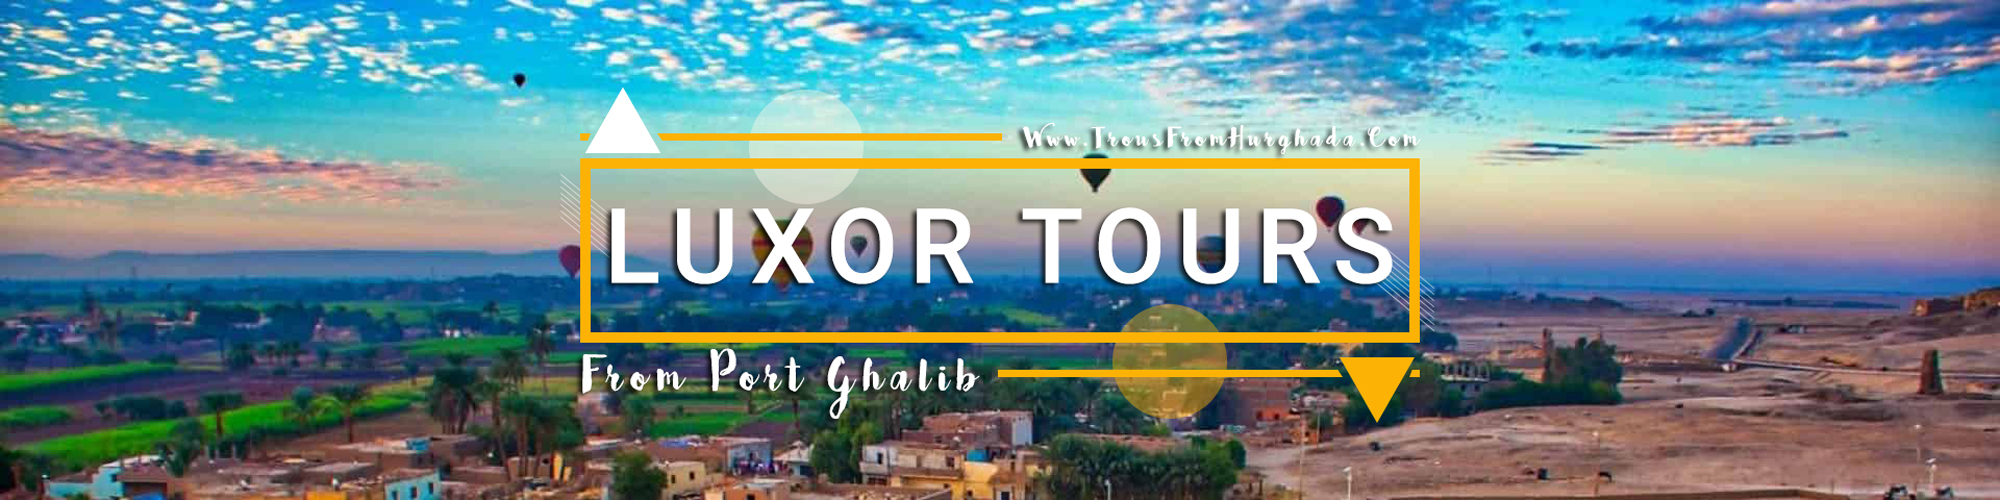 Trips to Luxor from Port Ghalib - Tours from Hurghada